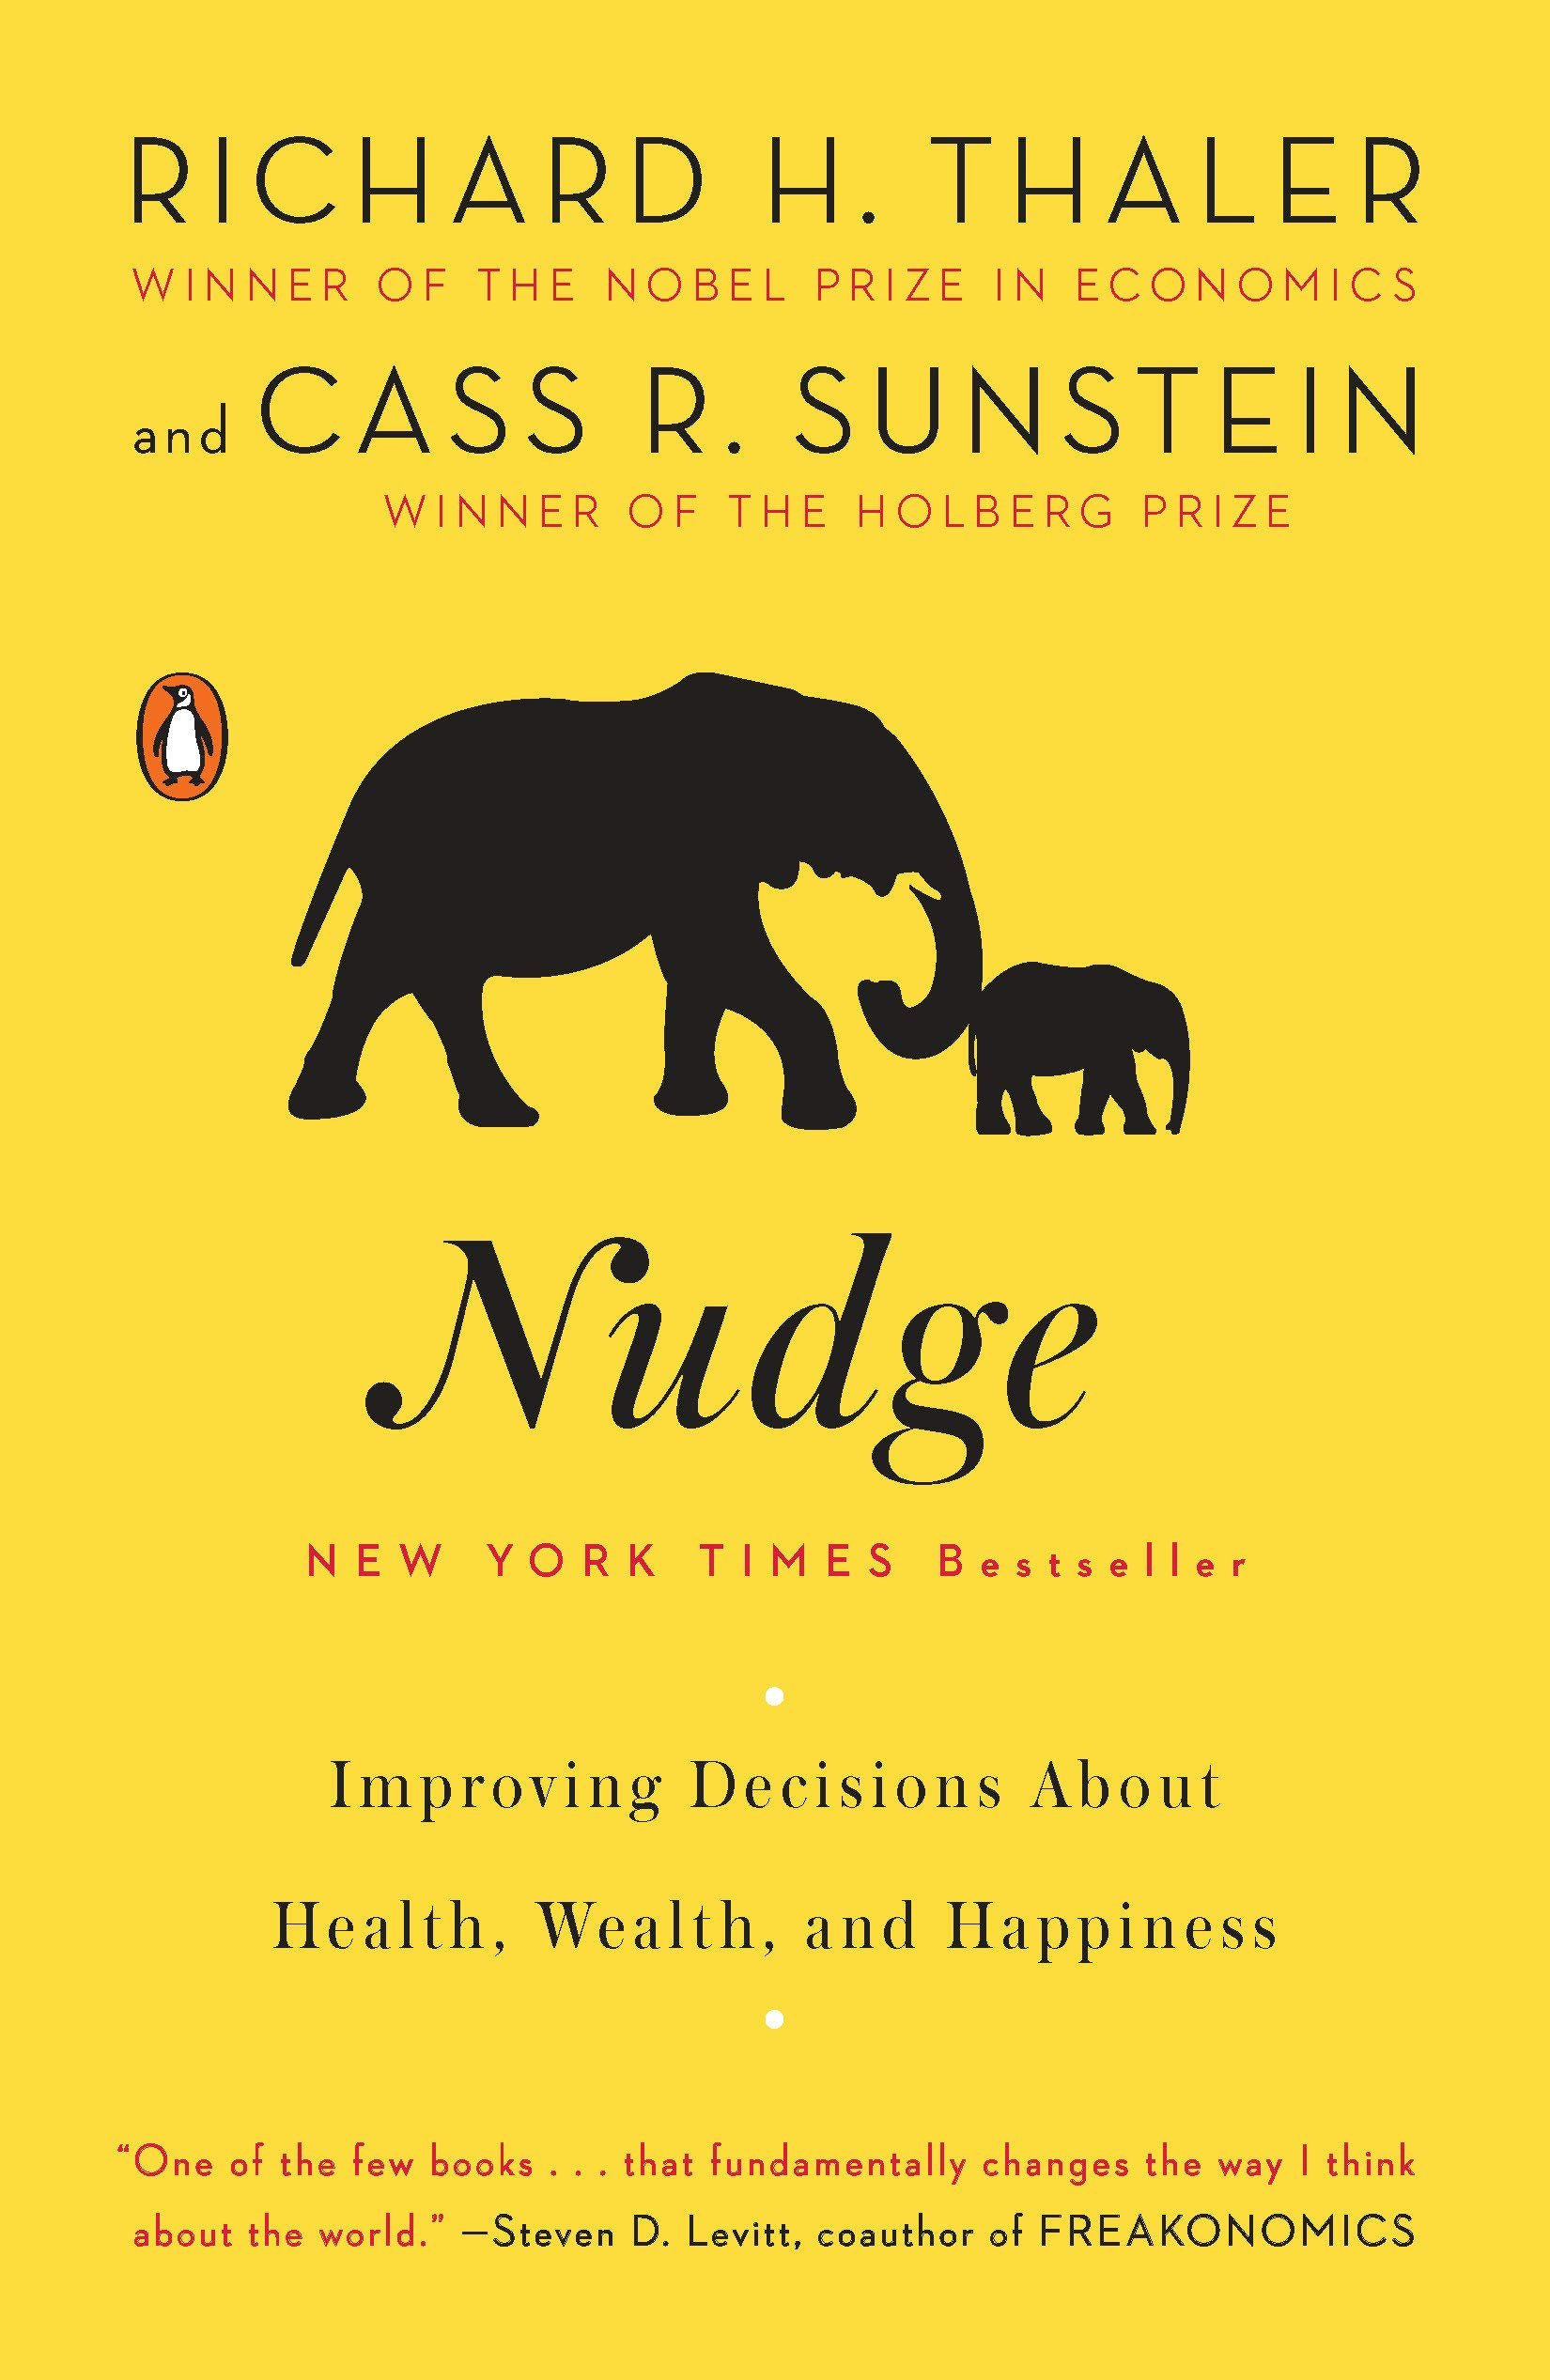 Richard H. Thaler in Cass R. Sunstein - Nudge: Improving Decisions About Health, Wealth, and Happiness